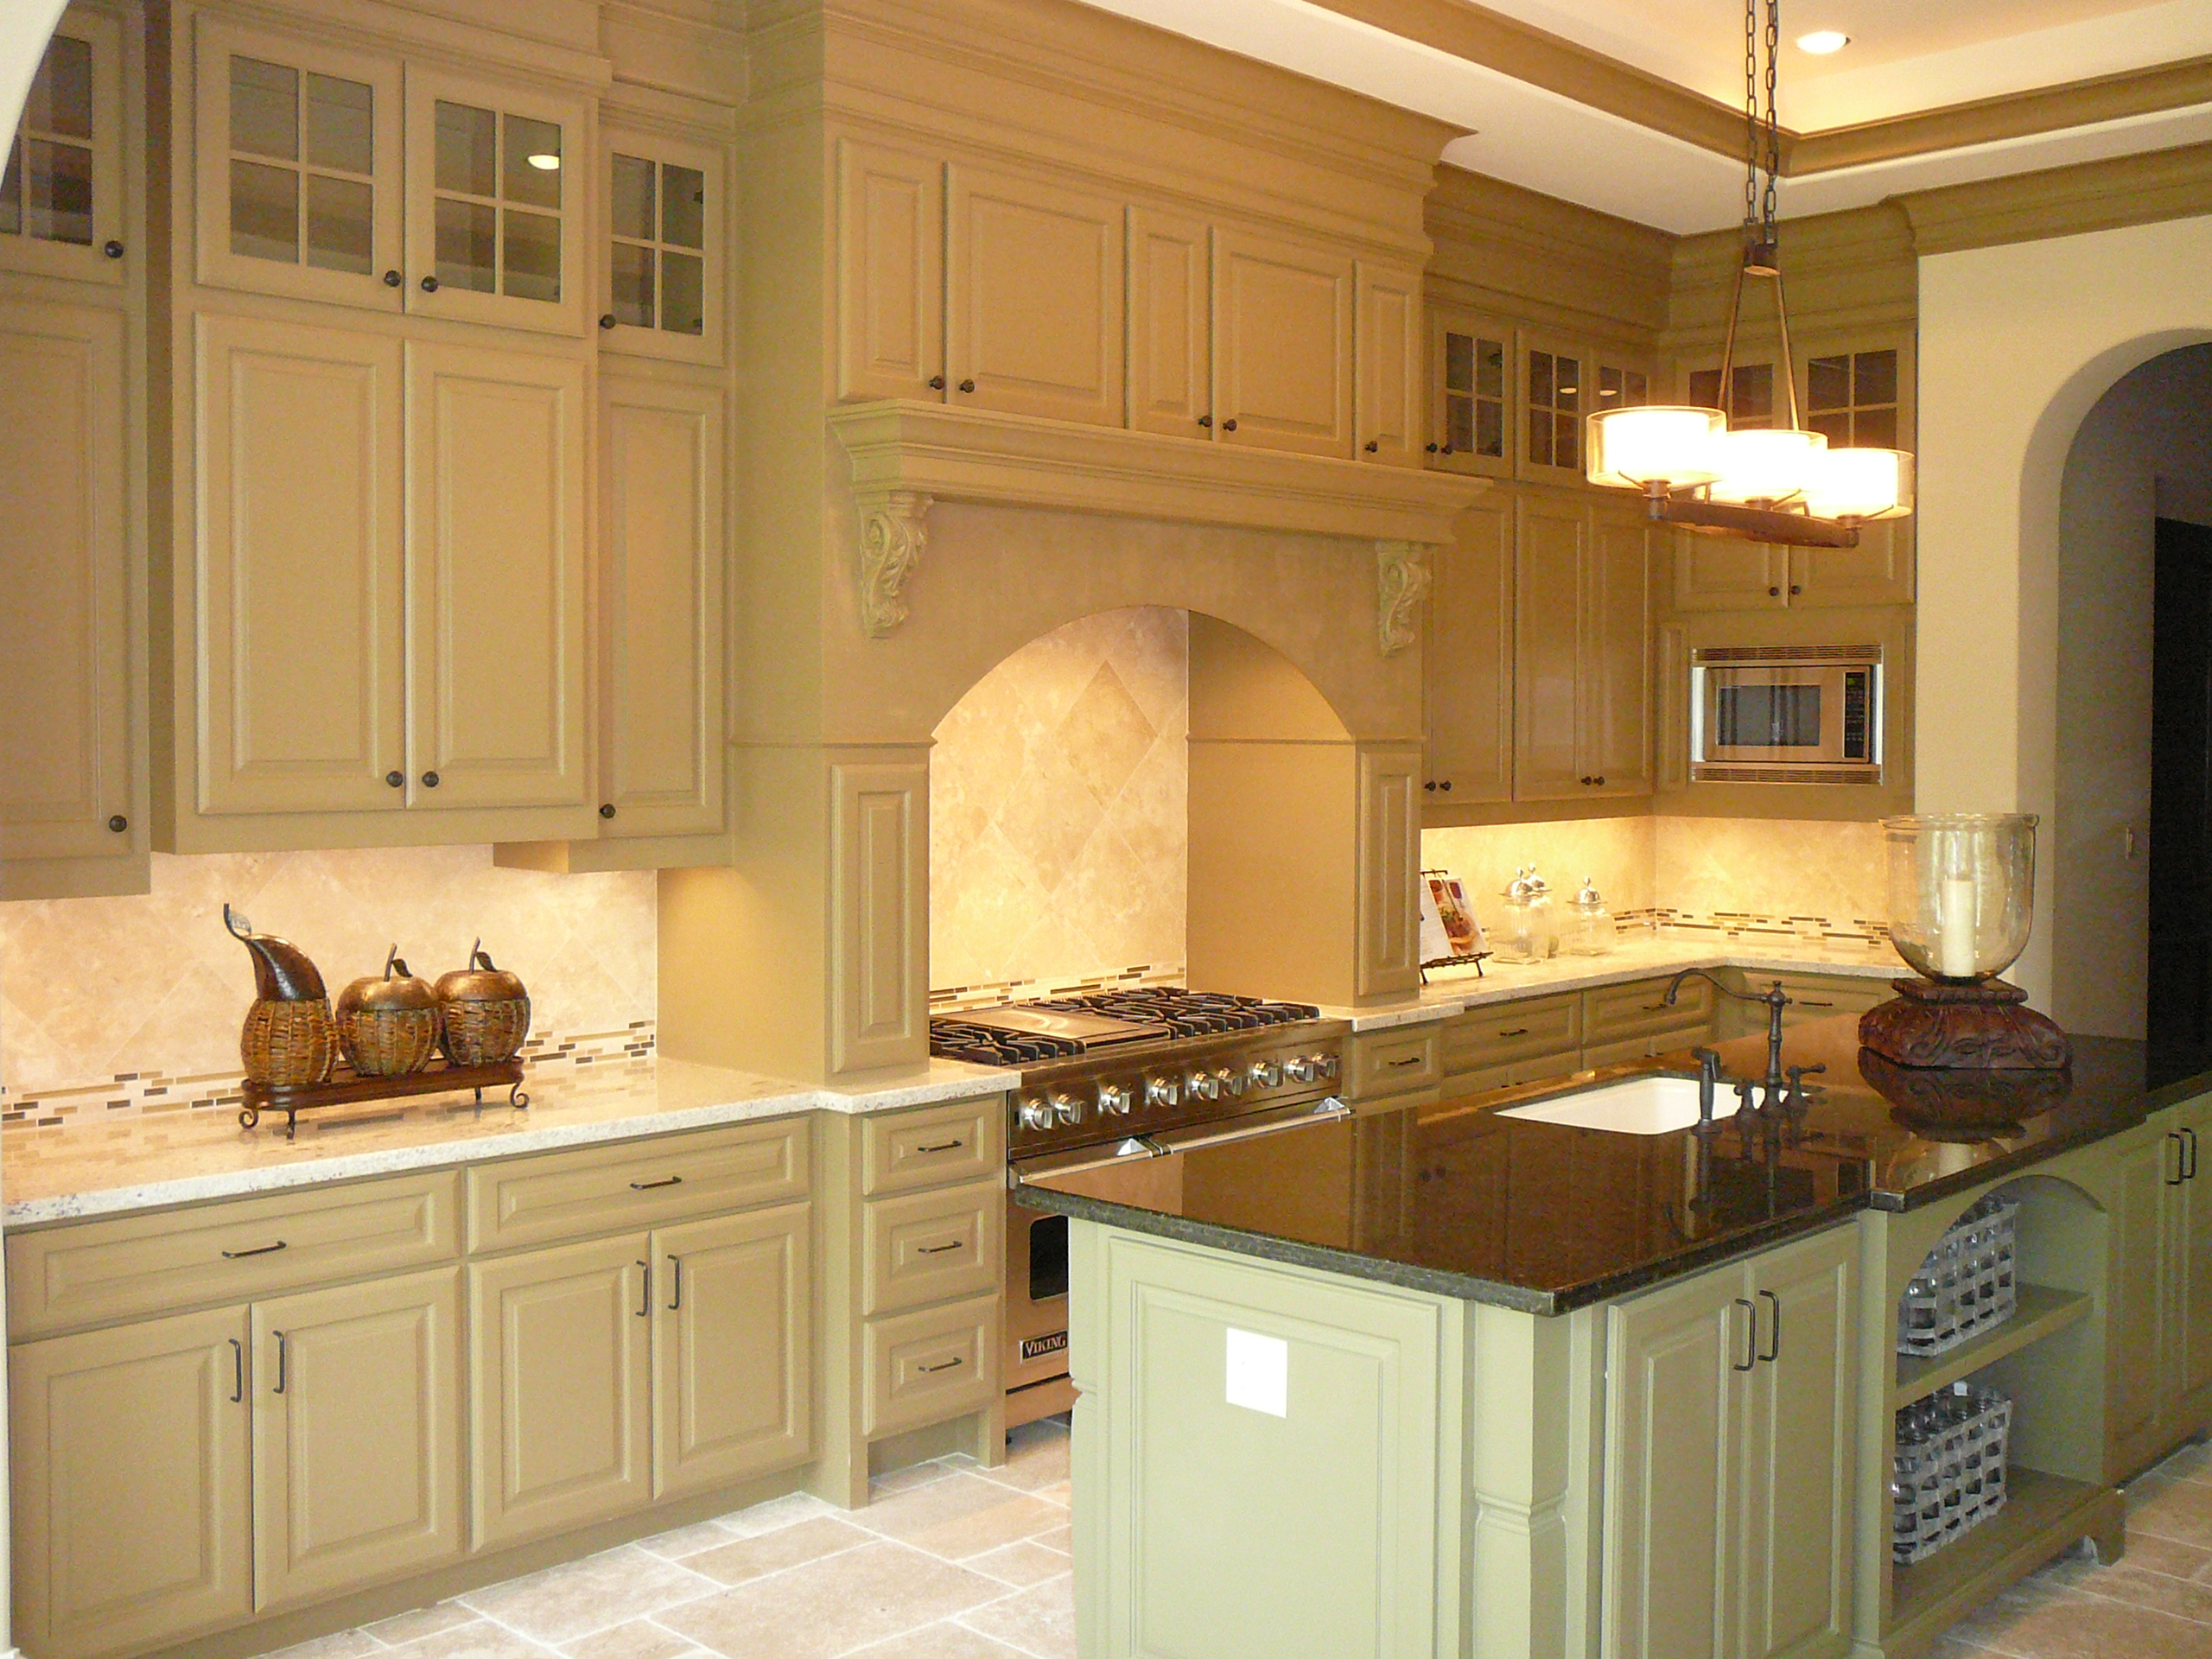 Bellarie home custom kitchen built by watermark builders for Building a new kitchen